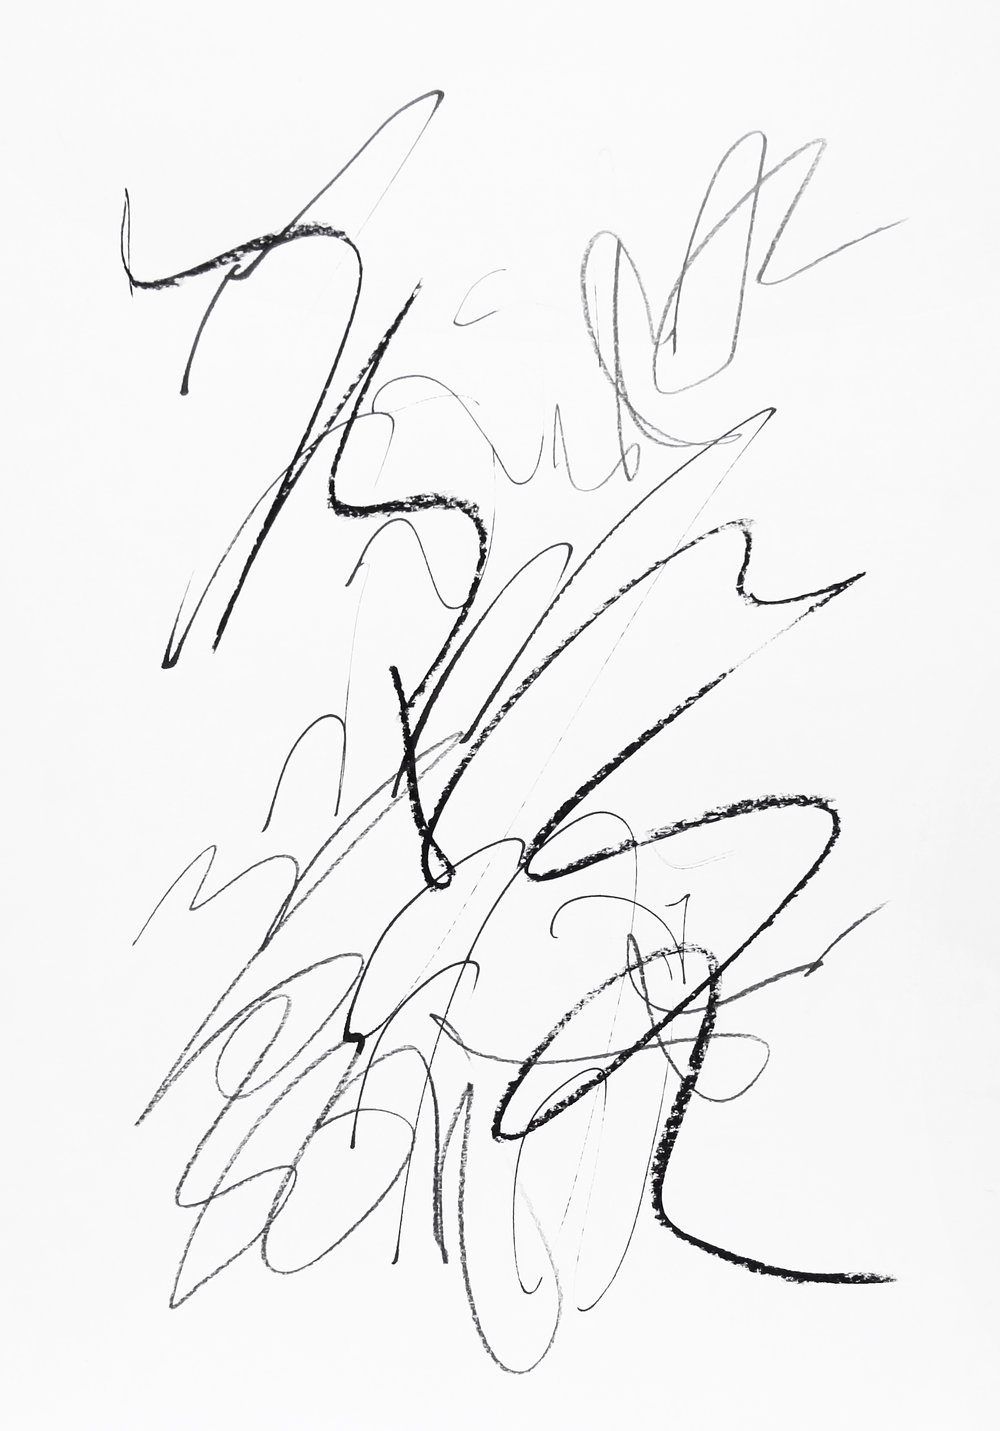 rhythm and flow studies, 2019 calligraphy ink, pencil and chalk on paper 42,0 x 29,7 cm (12-19)